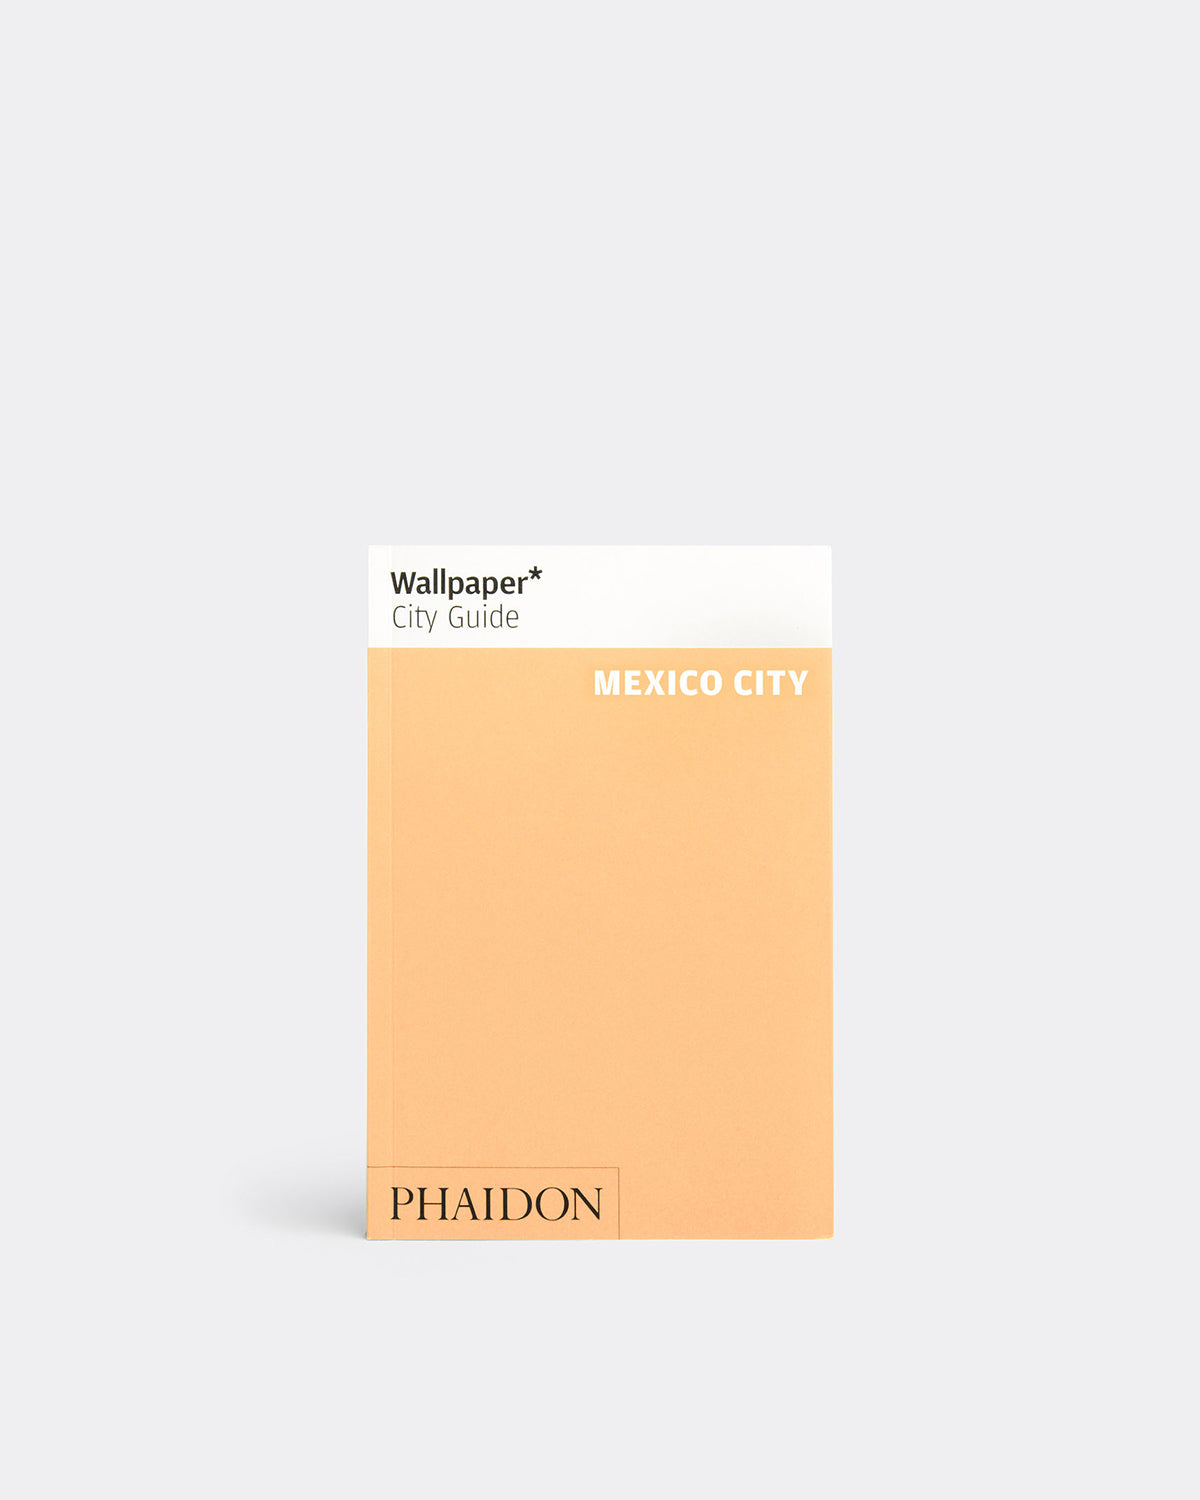 Wallpaper* - City Guide Mexico City